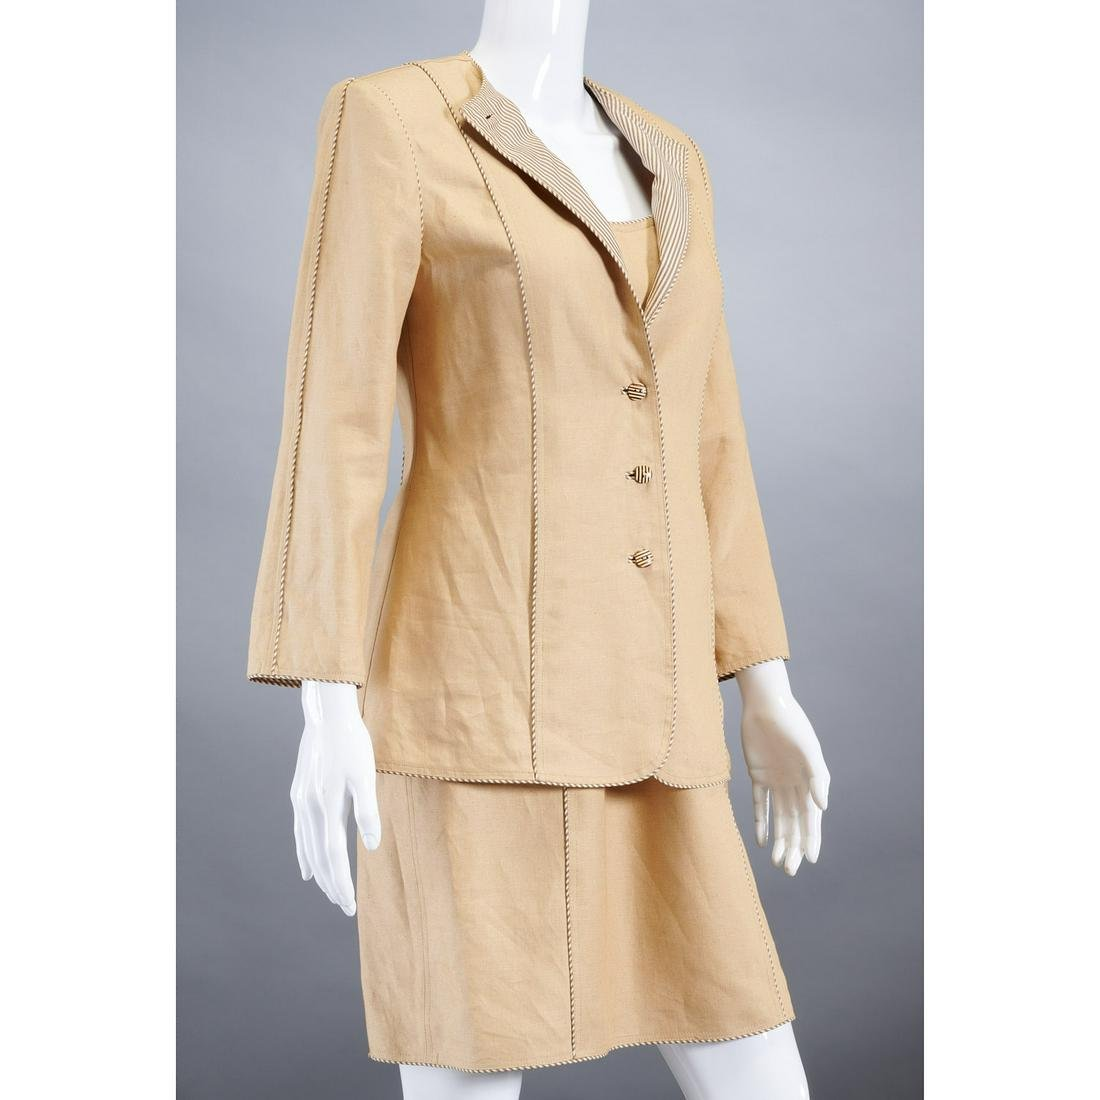 Geoffrey Beene jacket & dress ensemble